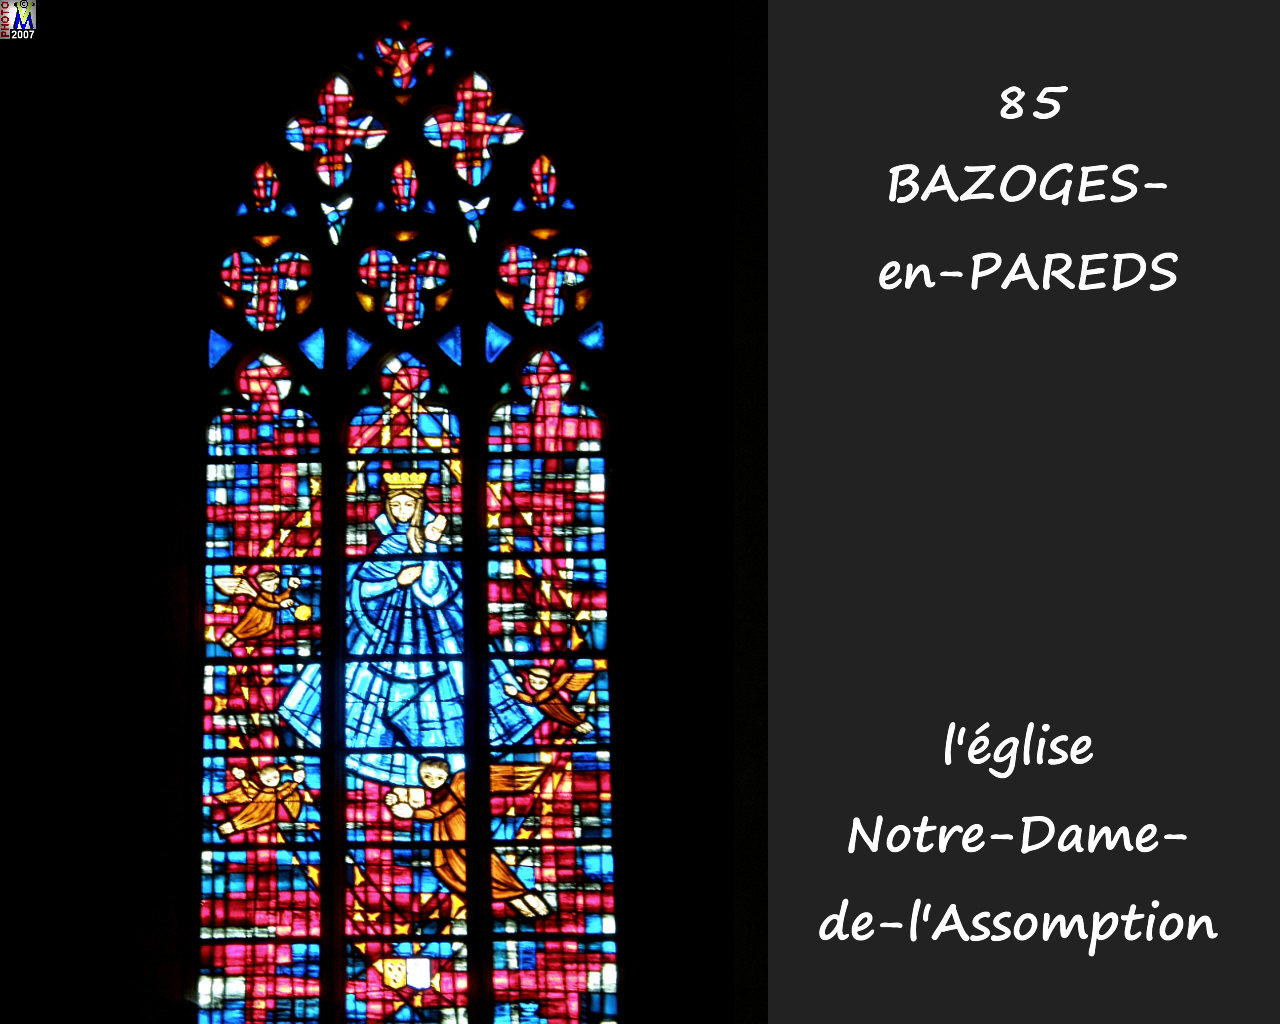 85BAZOGES-PAREDS_eglise_210.jpg